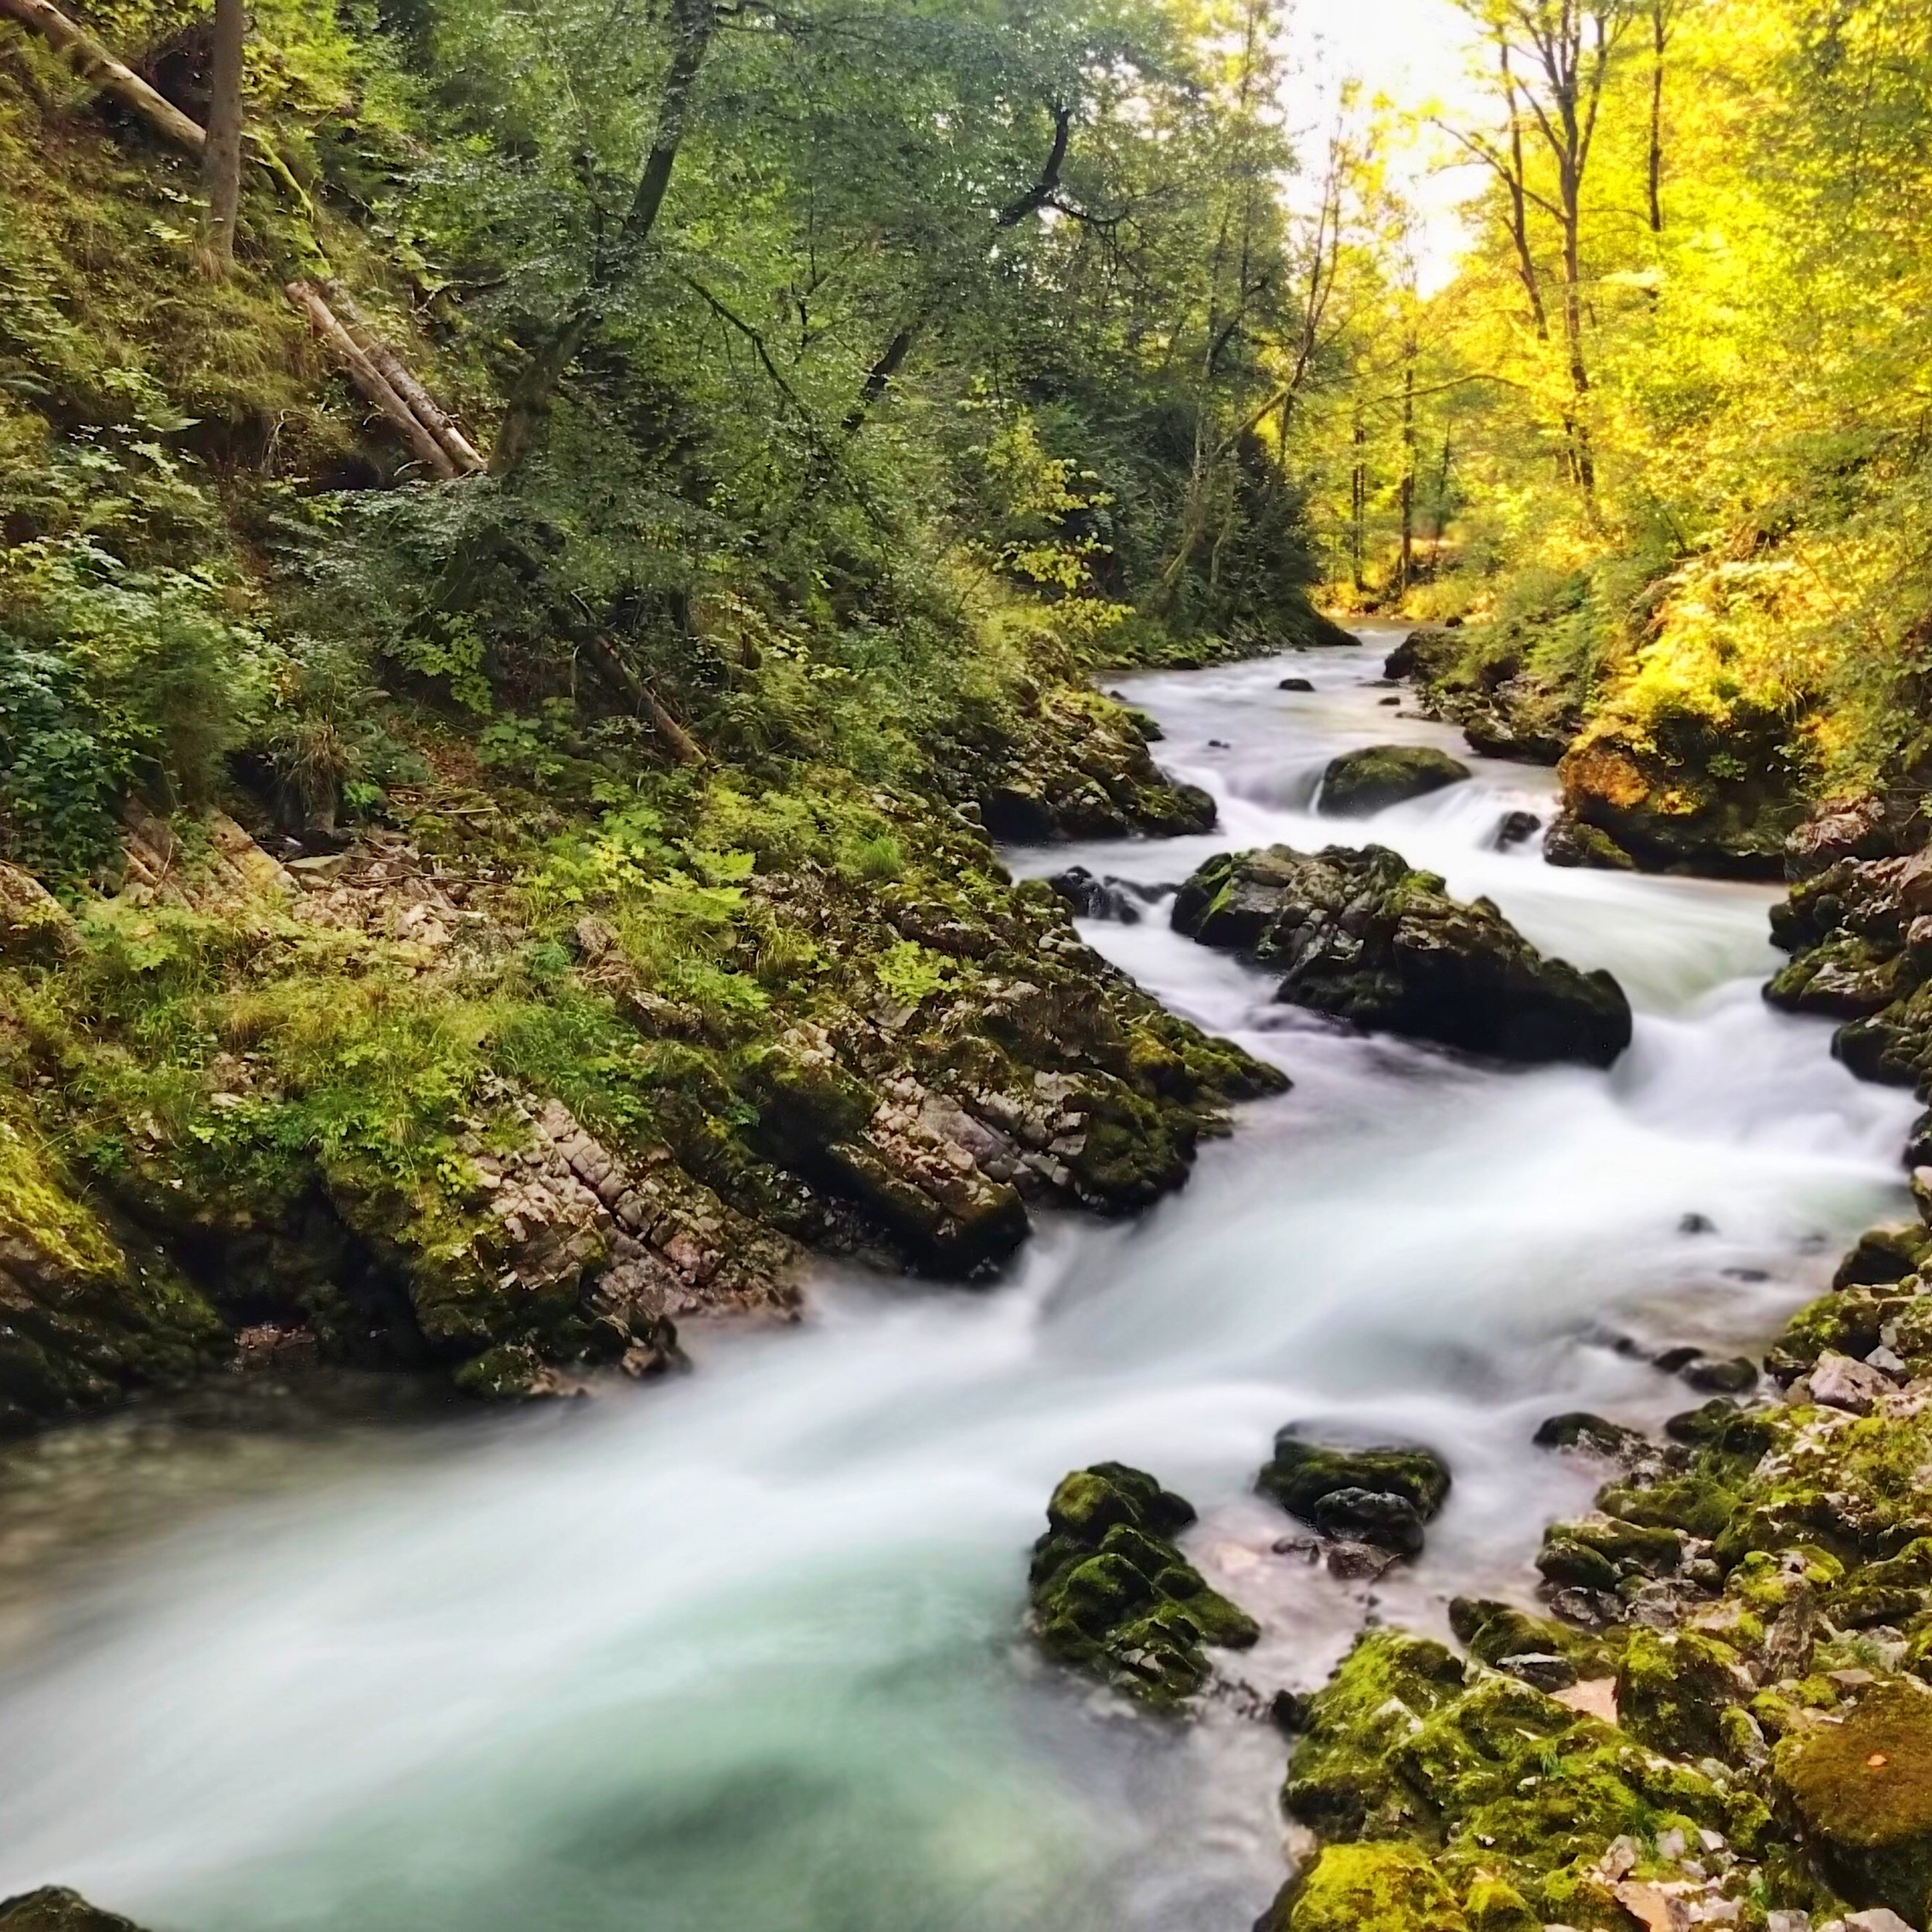 "- In the Radnova Valley, about 1.5 hours from Ljubljana, near Bled, runs the very active portion of the Radnova River, Vintgar Gorge. The canyon walls run from 50 to 100 meters. At 1.6km long, the gently undulating walkway brings you close to the action: raging rapids, breathtaking falls, and picnic-friendly rocks, all for €5. Your pup is welcome also! Parking is available and free but you'll do more strenuous walking from the lots to the entrance than you will along the gorge itself. One kink: once you've reached the end, the only way out is to turn around and go back from whence you came. So on the upside, you get to see this beautiful water feature twice, but on the down side, you're swimming against the current of people. Just prepare yourself and learn how to say ""Excuse me,"" in Slovenian because you'll be using it a lot. By the way, it's ""Oprostite prosim,"" if you'd like to start practicing now."